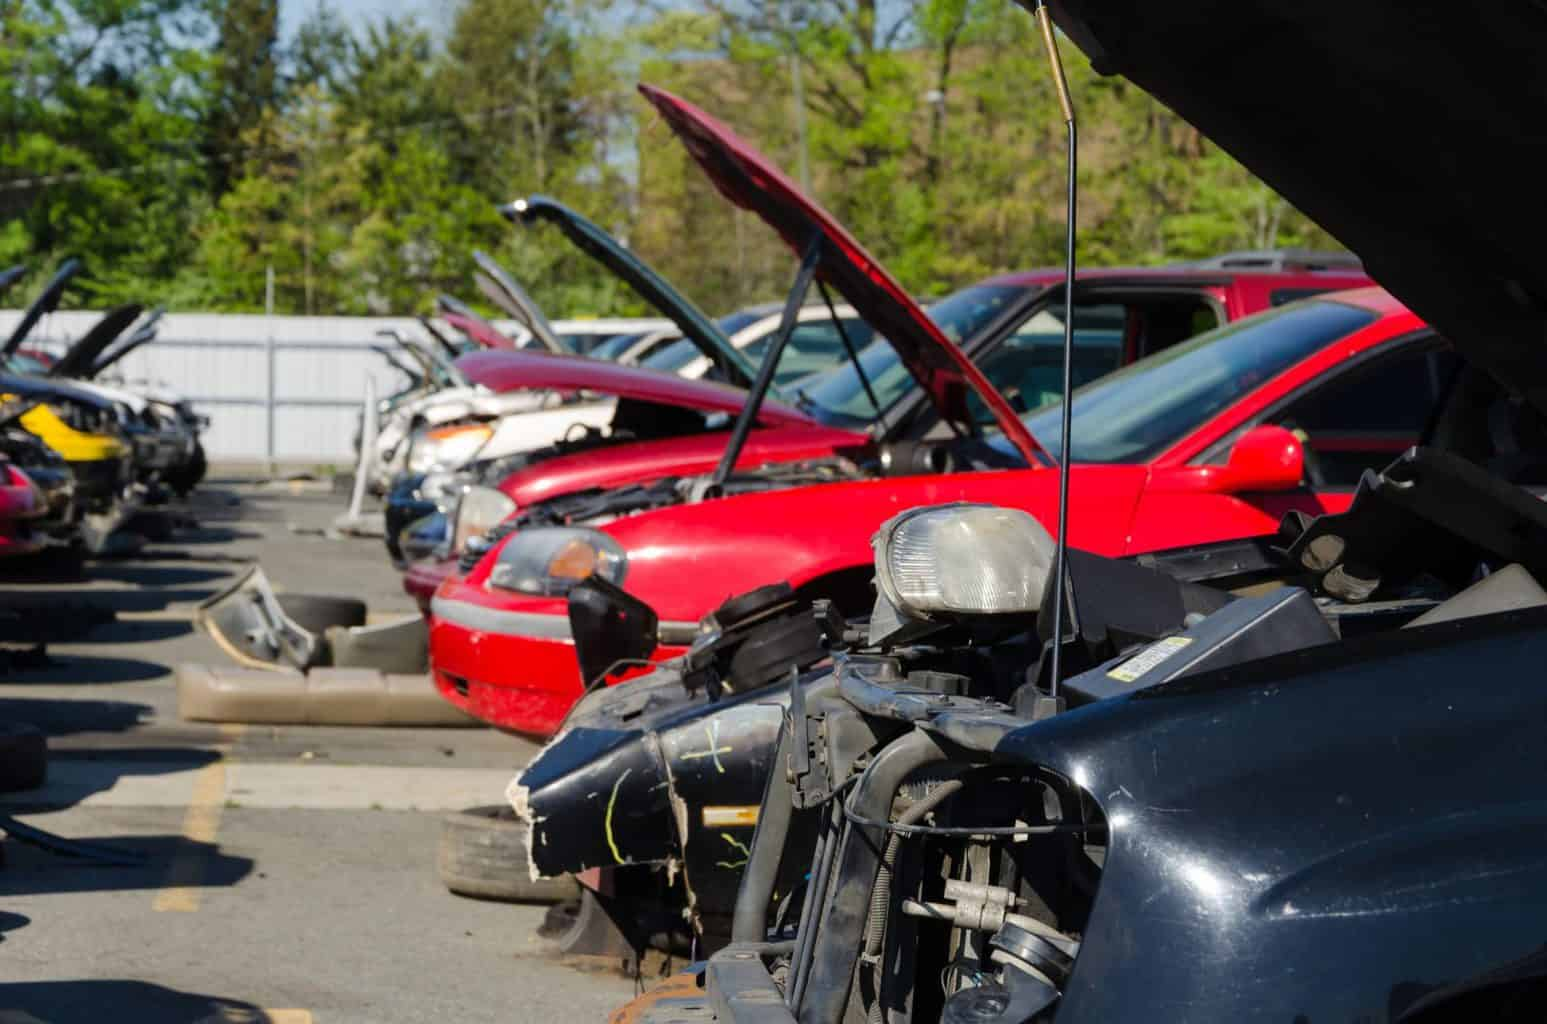 Sell Junk Cars >> Selling Junk Cars For Cash Factors That Impact Price